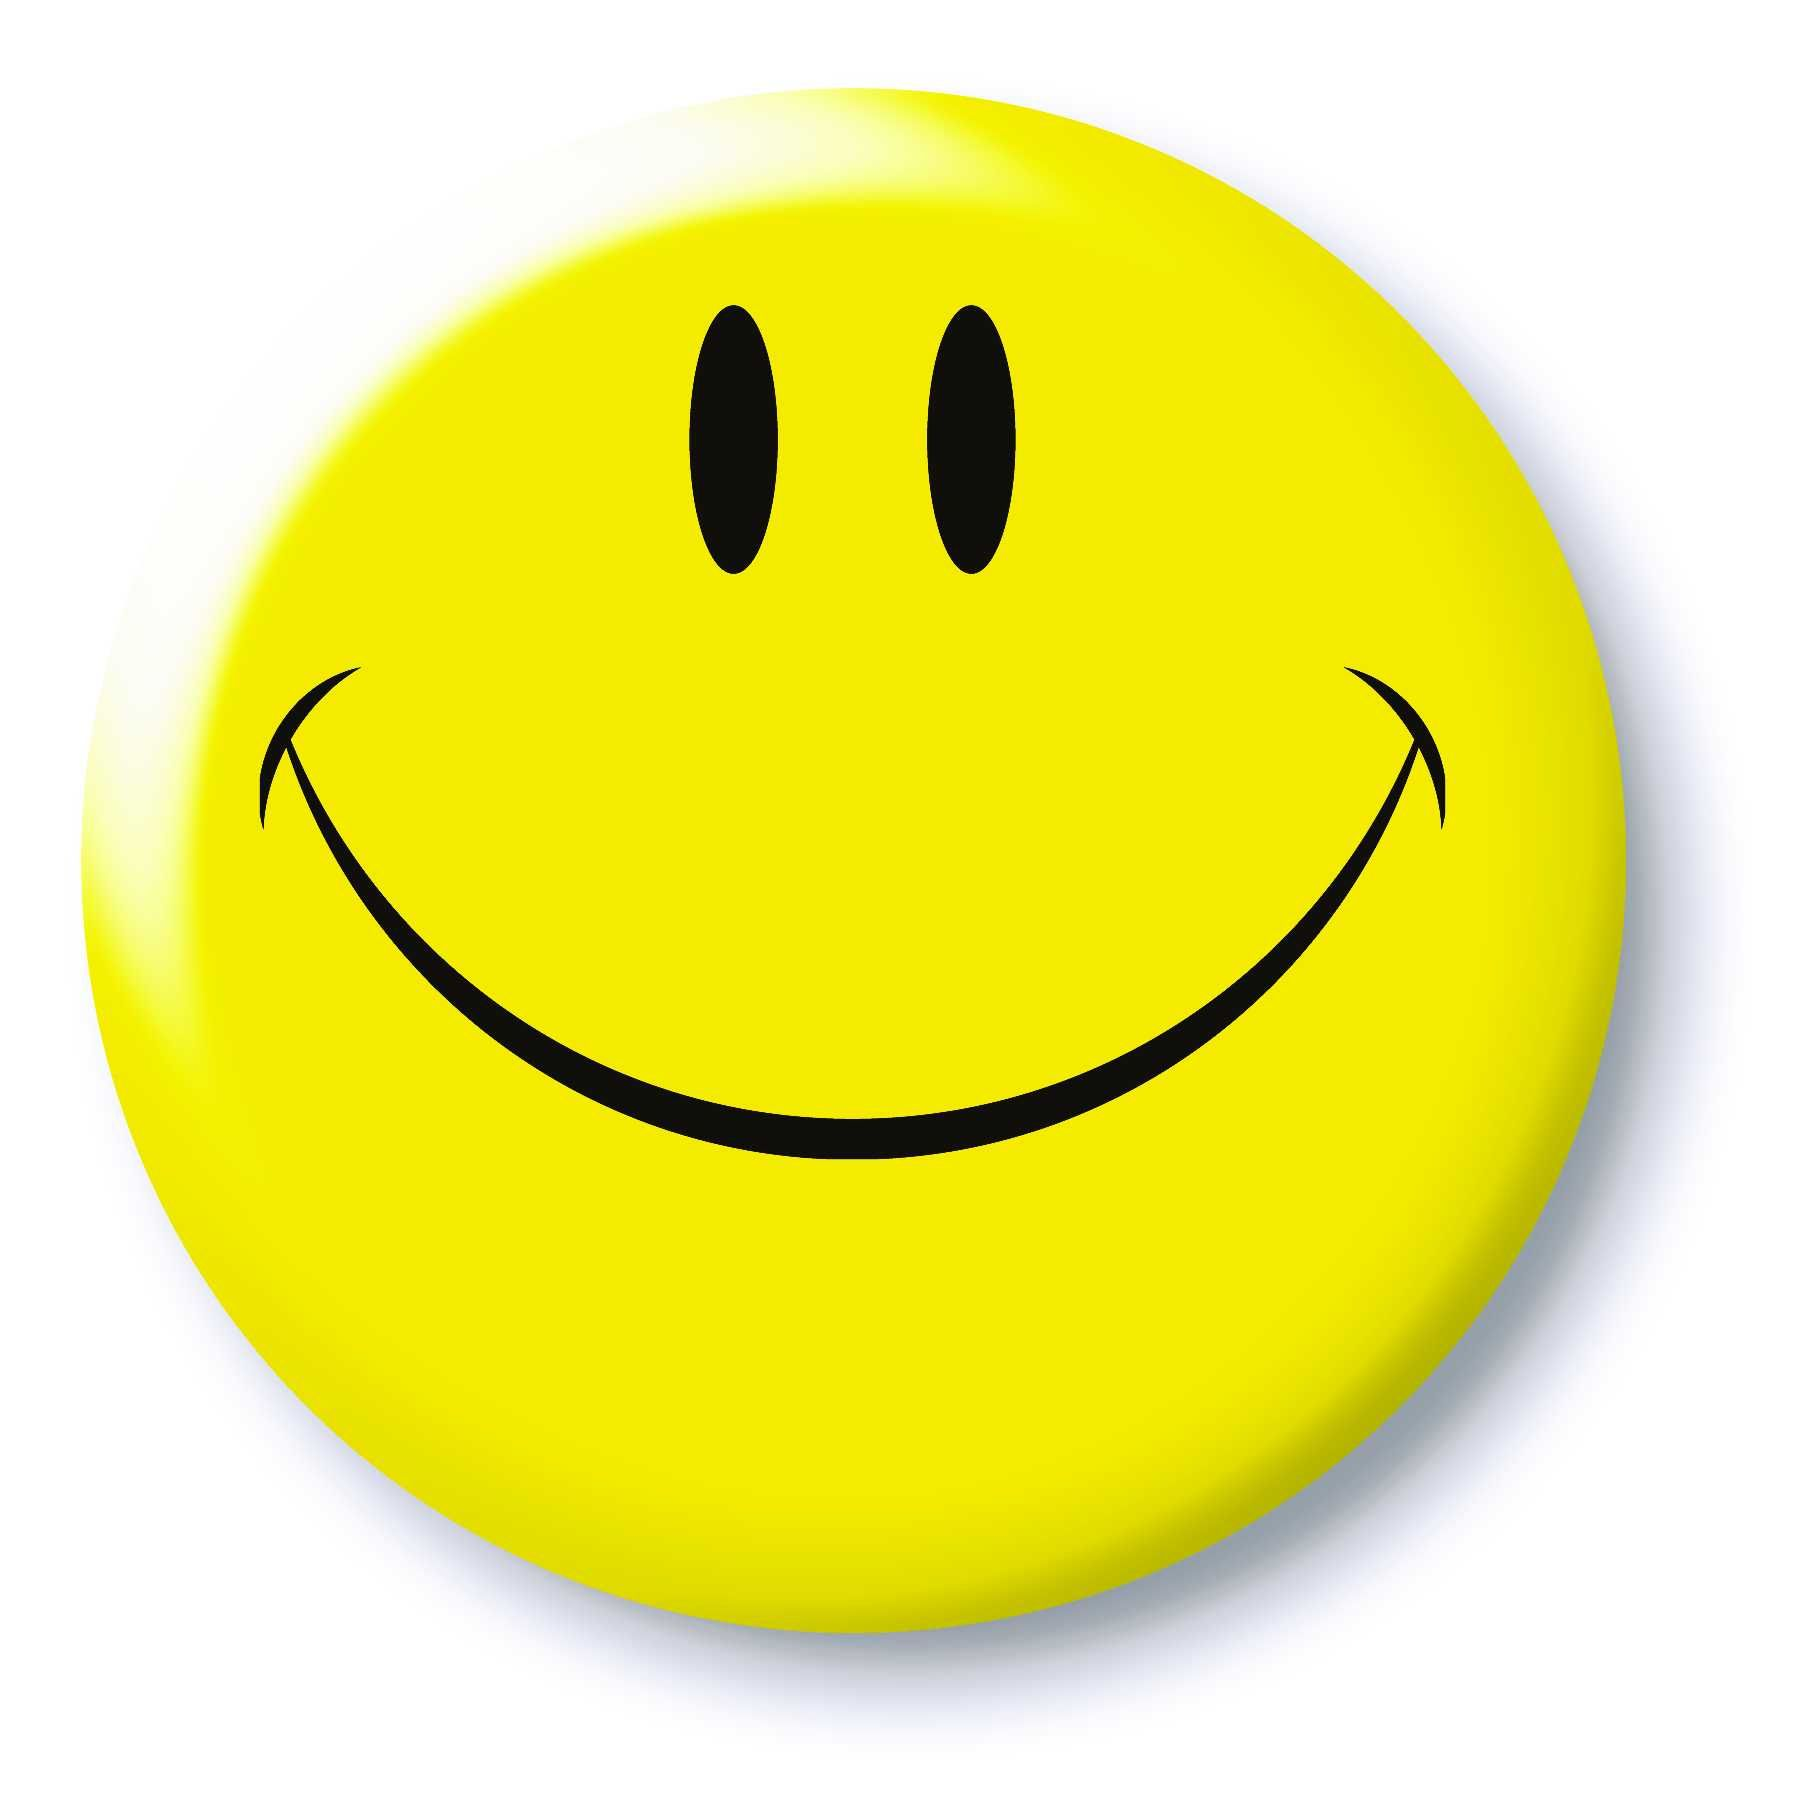 Smiley face flat smiley symbols facebook and smileys i love smiley faces happy face symbol symbols facebook biocorpaavc Images